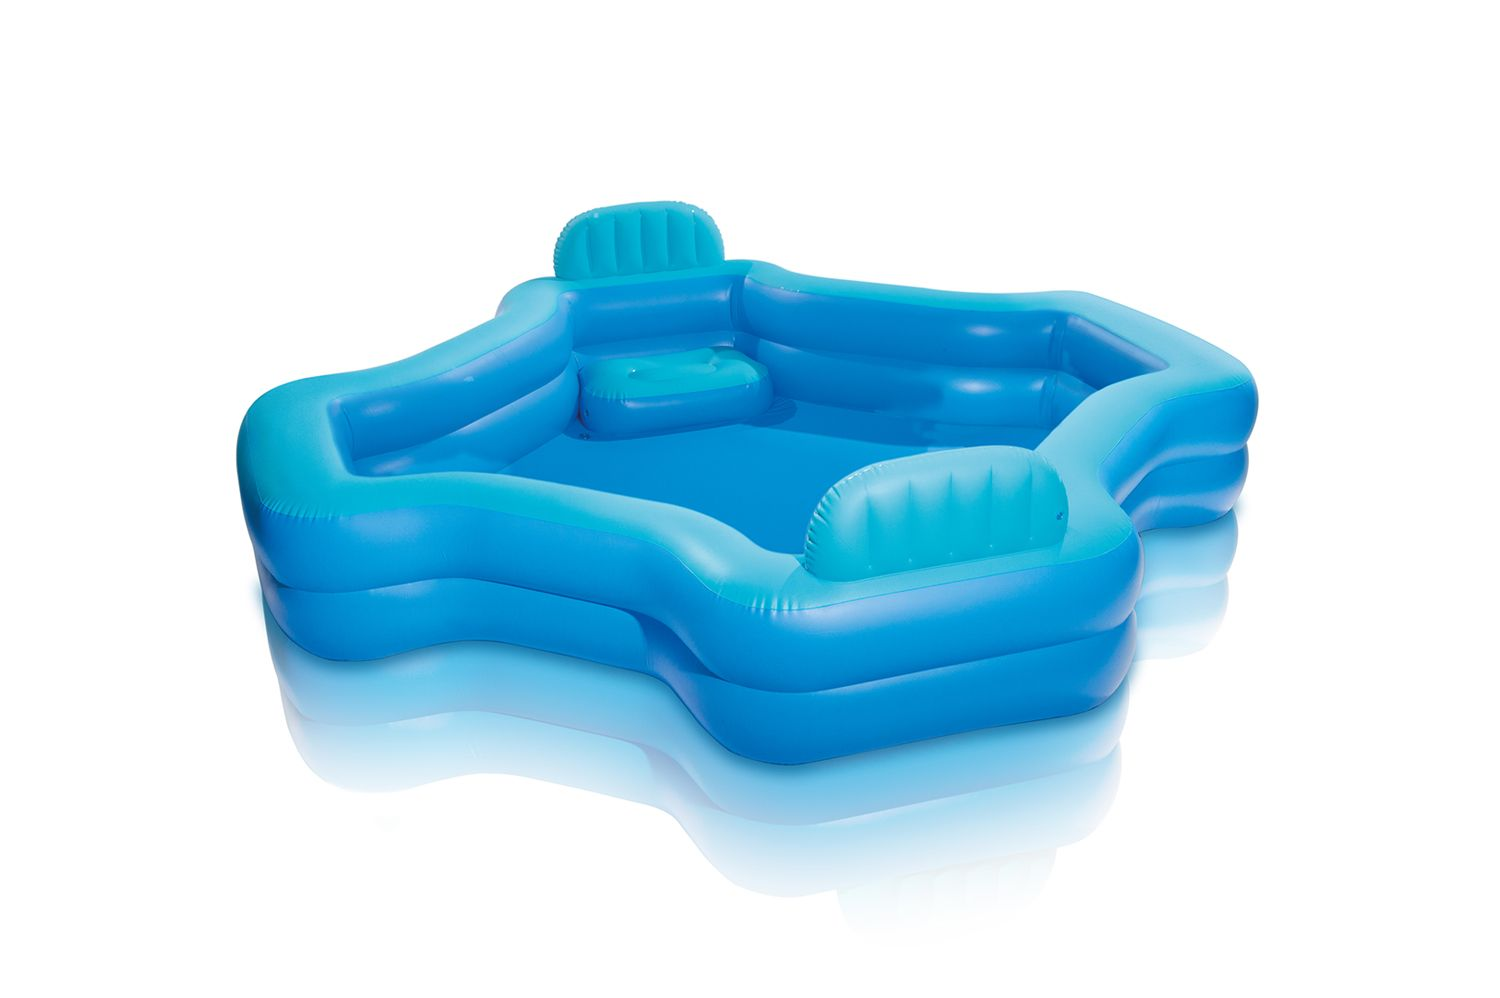 Intex Inflatable 2 Seat Swim Center Family Lounge Pool Walmart